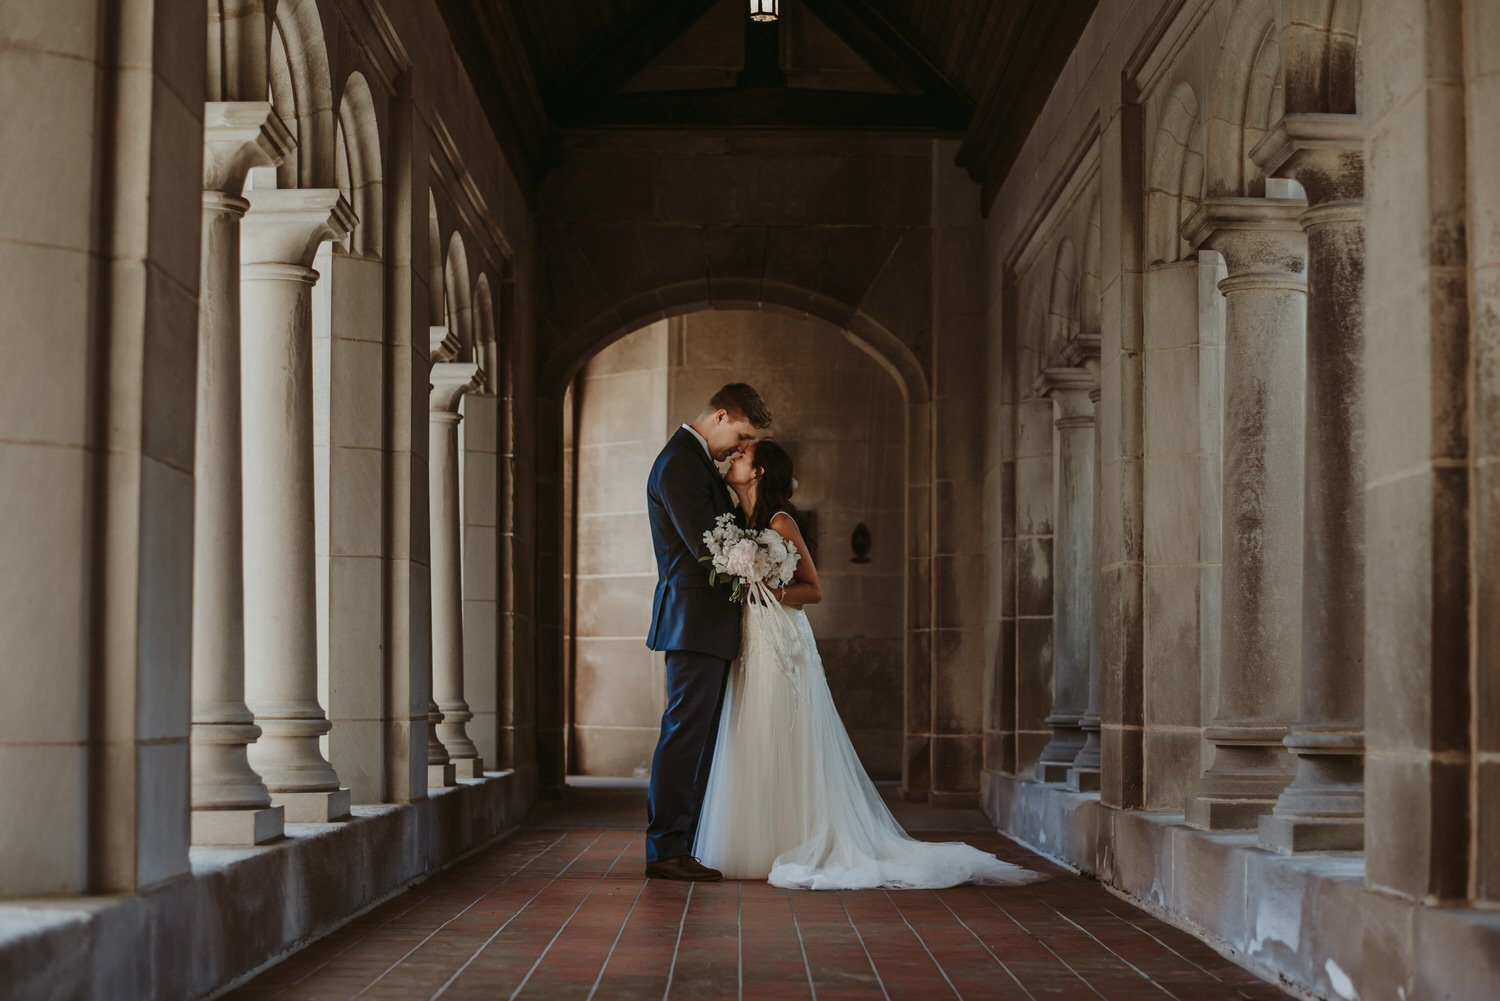 The Adamkovi Chicago Wedding Photography, Creative photography, Dark and moody, Documentary